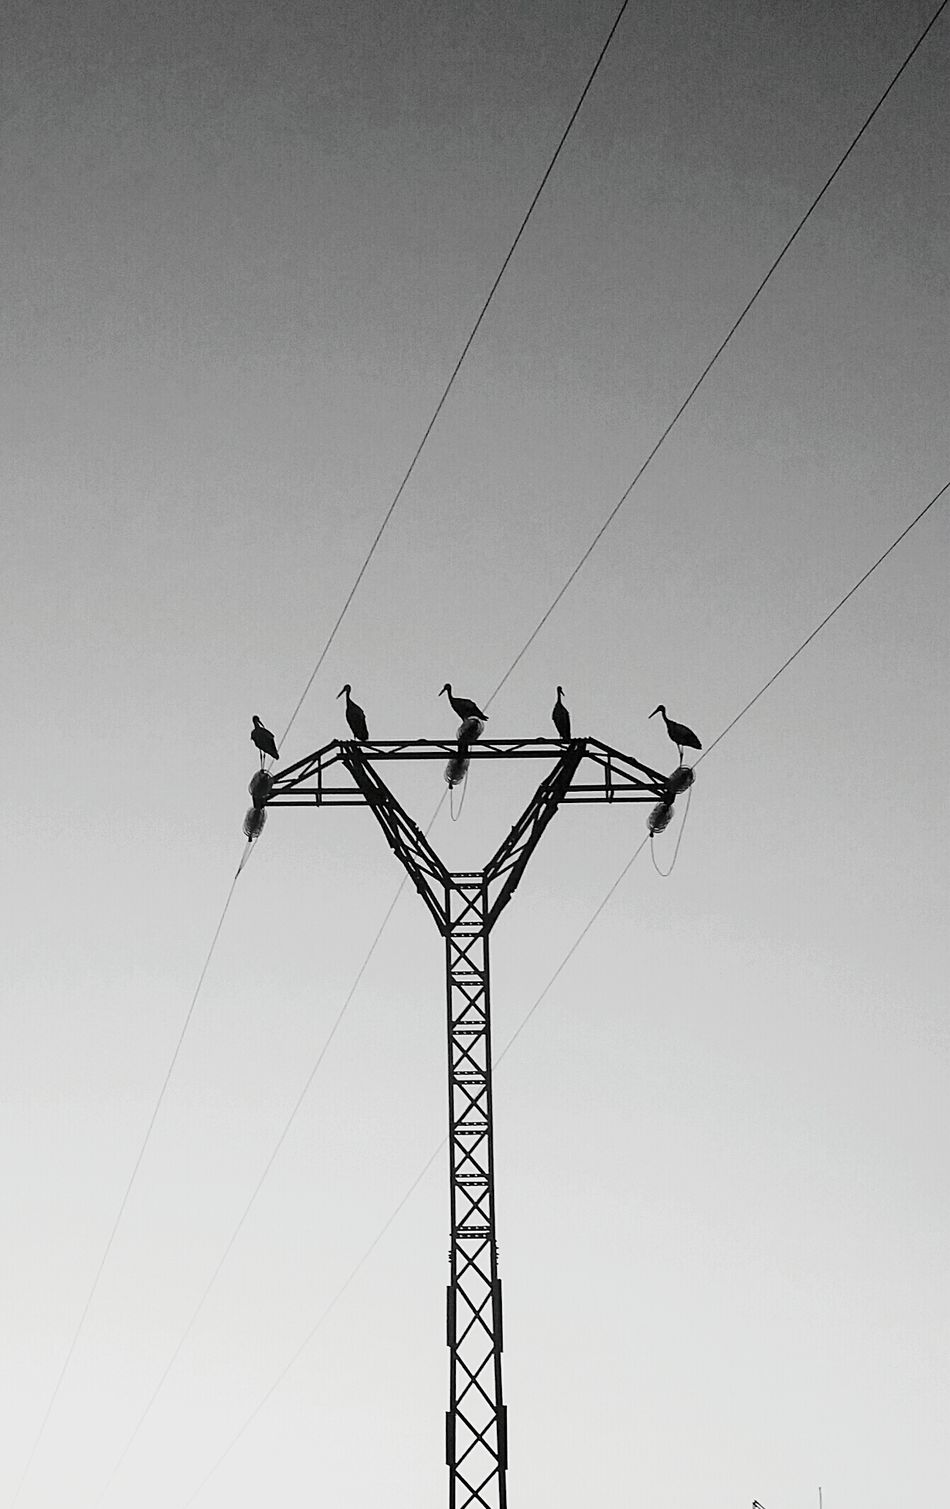 Animal Themes Outdoors Electricity Tower stork First Eyeem Photo